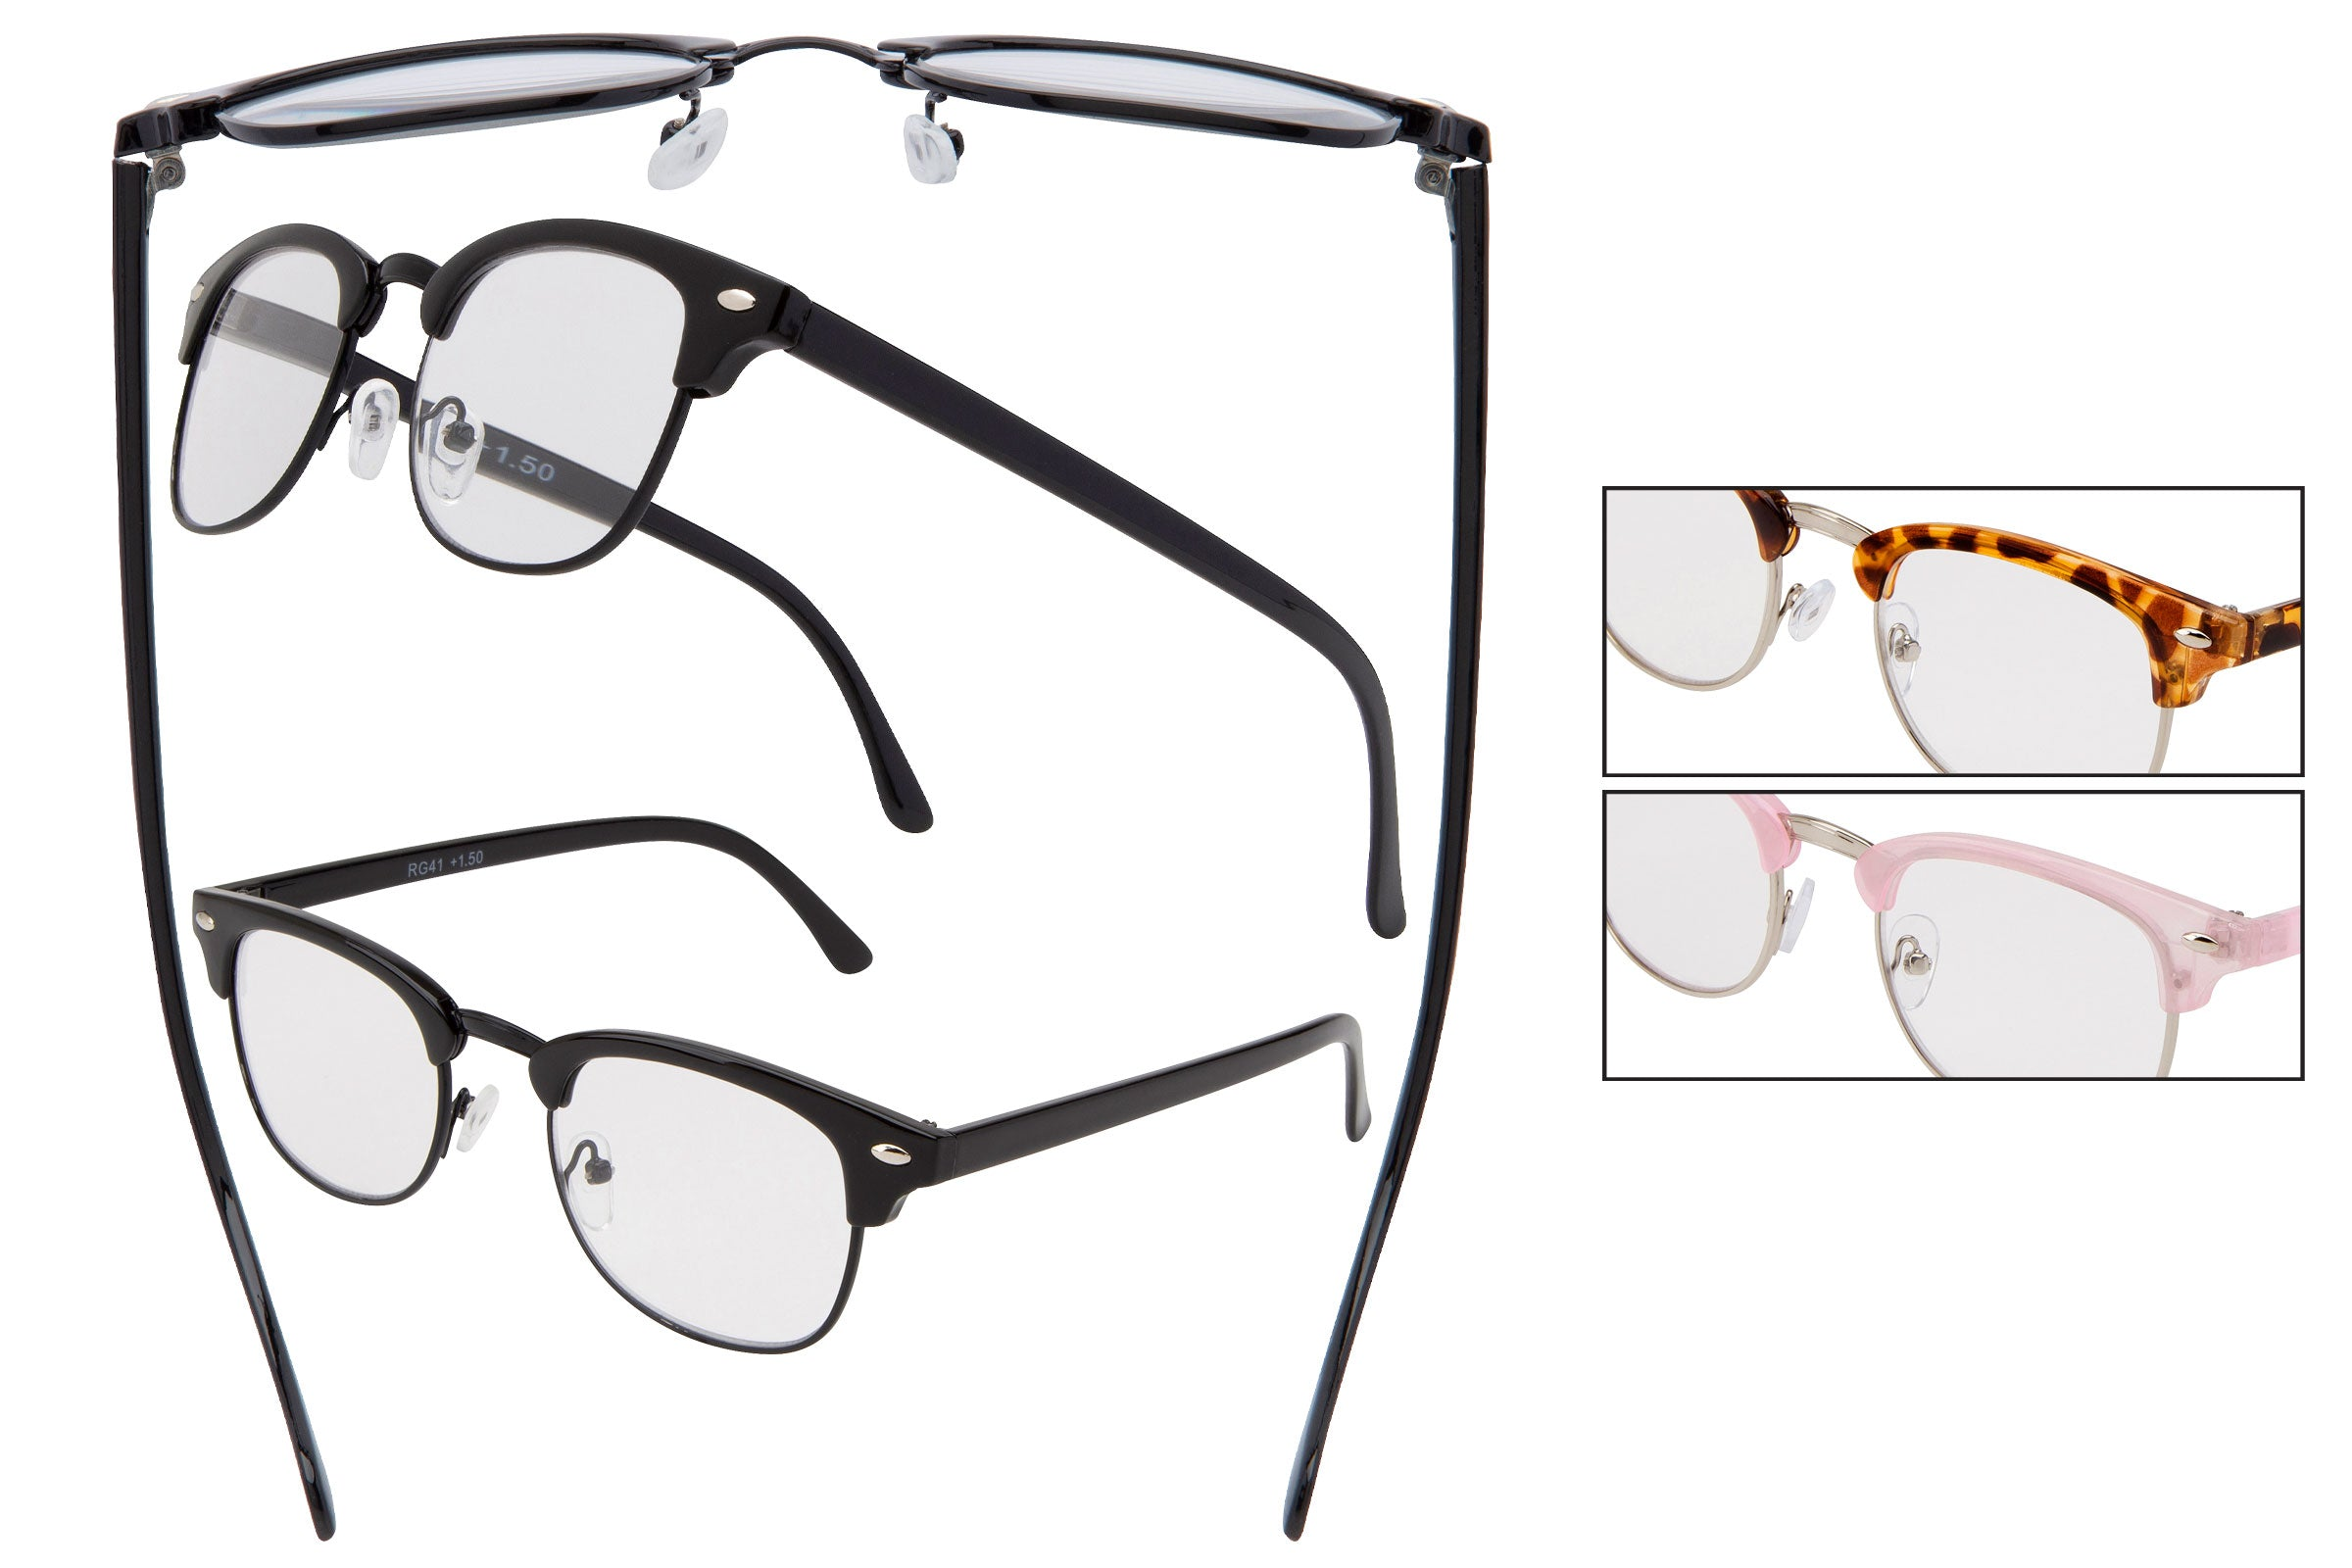 RG41 - Vox Reading Glasses Assorted Powers